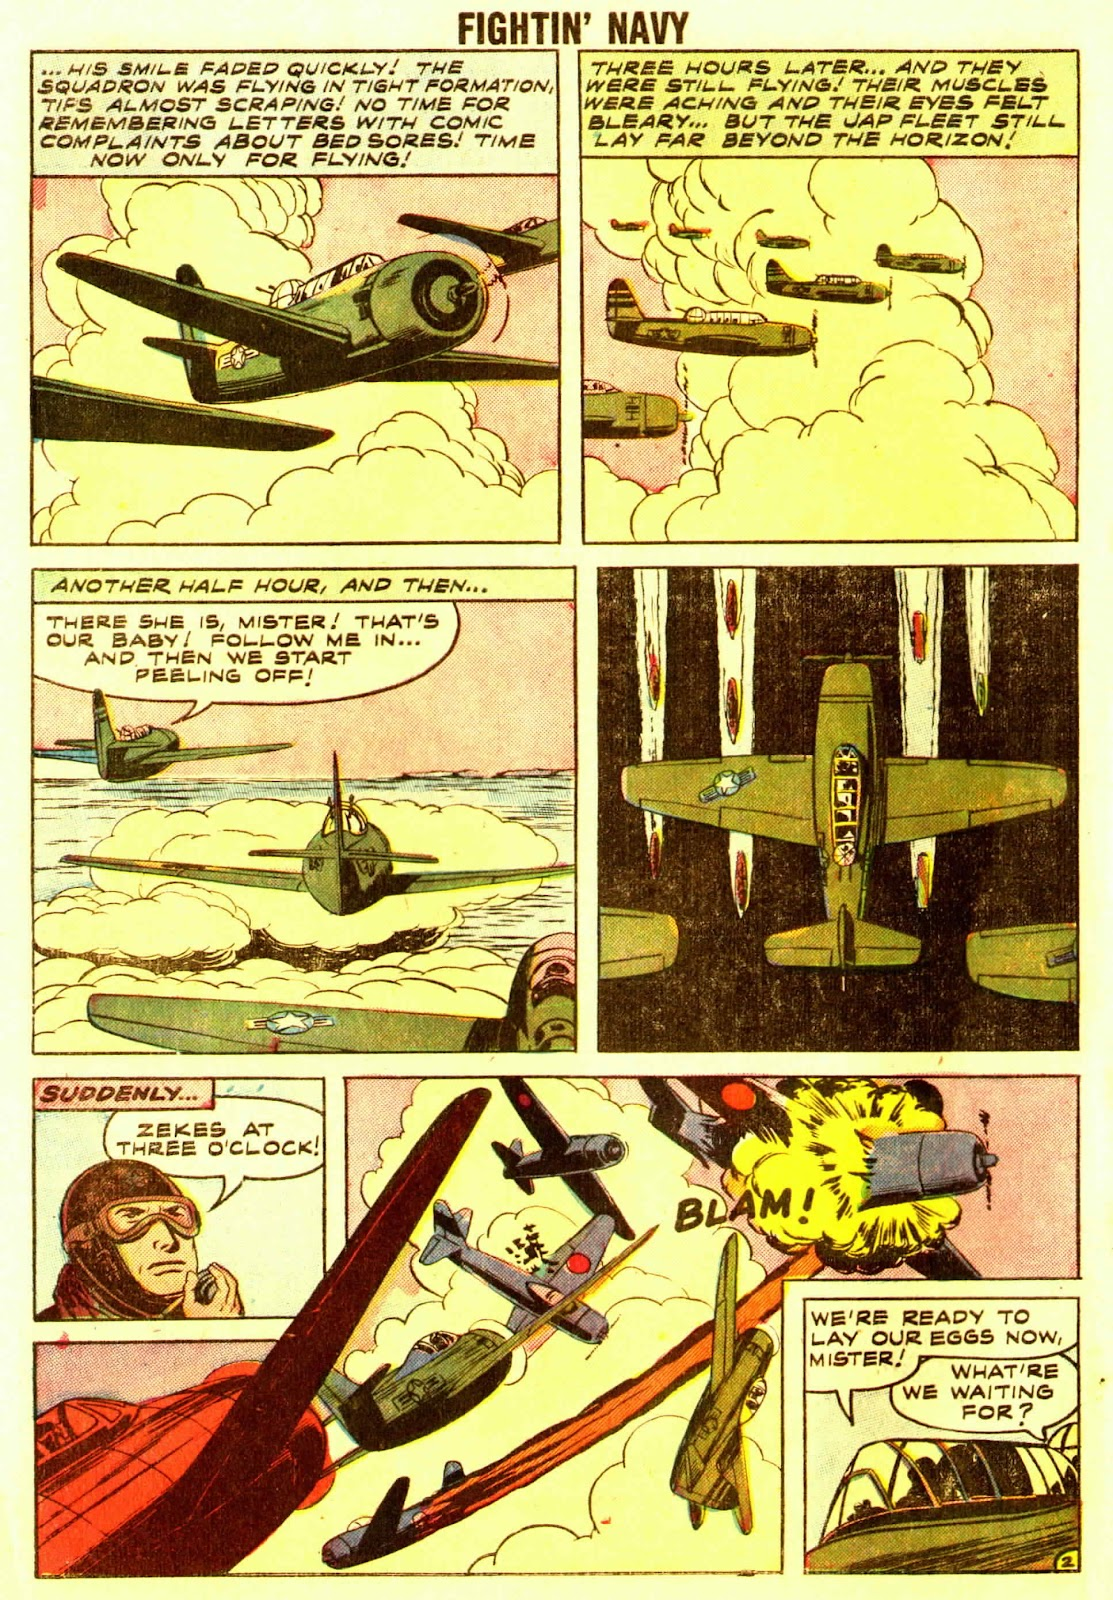 Read online Fightin' Navy comic -  Issue #83 - 94